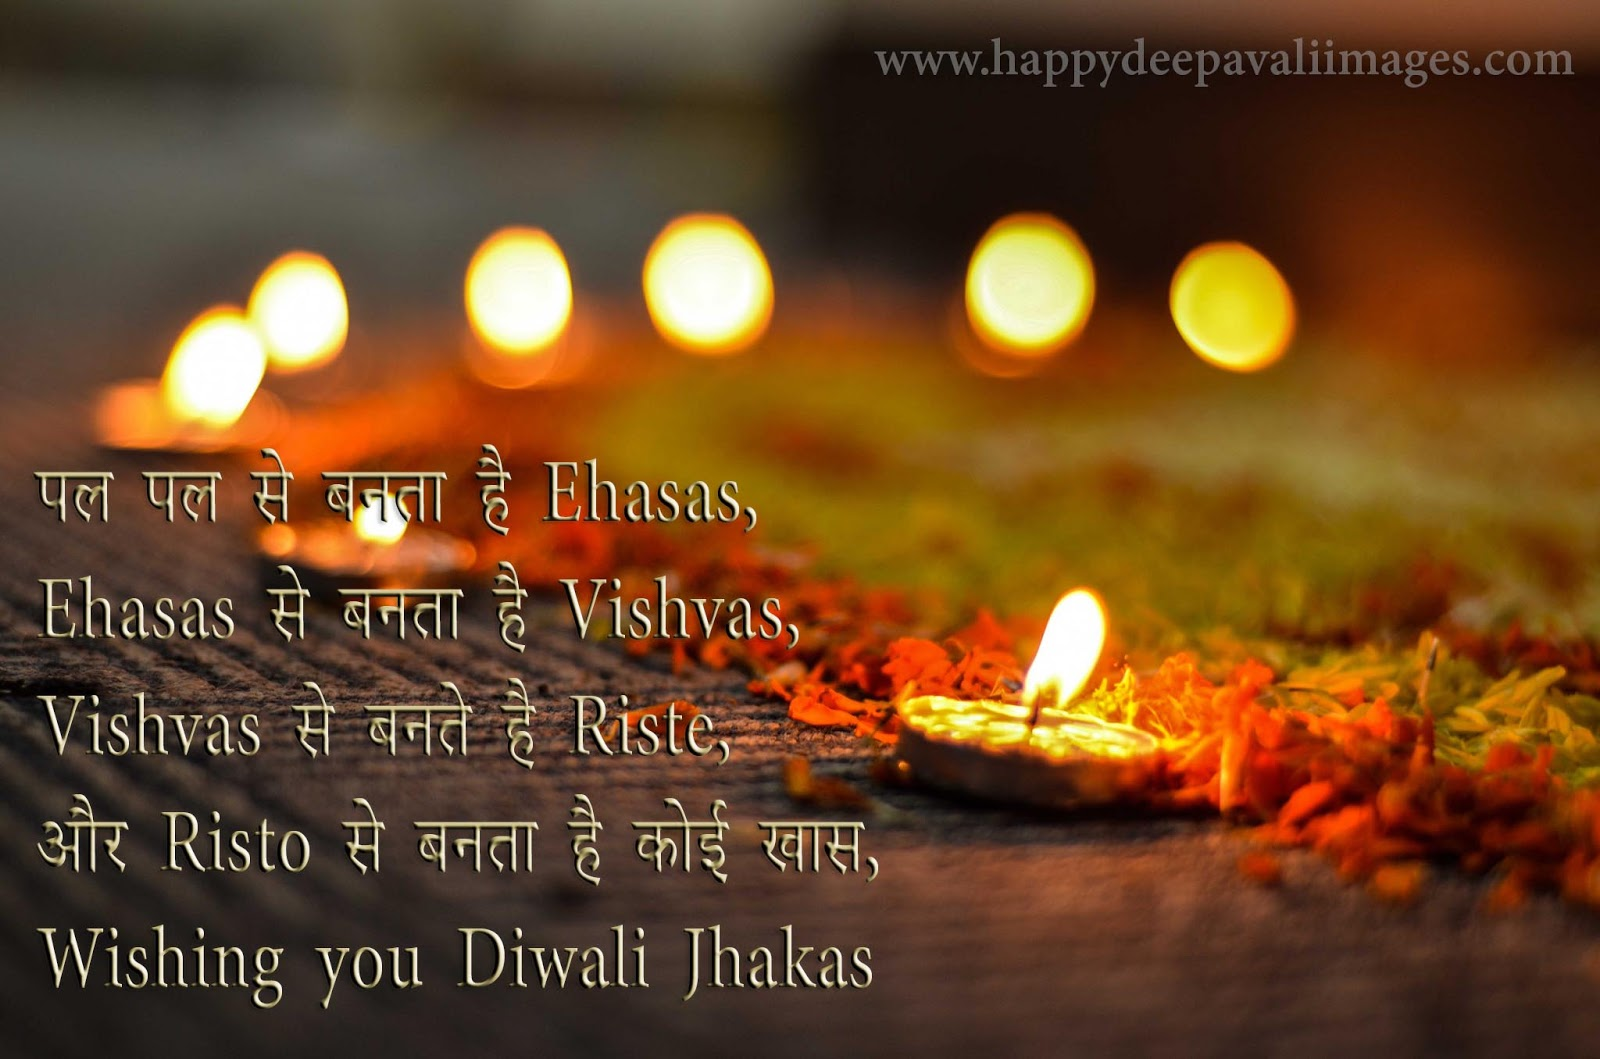 Happy diwali sms in hindi happy diwali images 2018 diwali sms and greetings in hindi m4hsunfo Choice Image